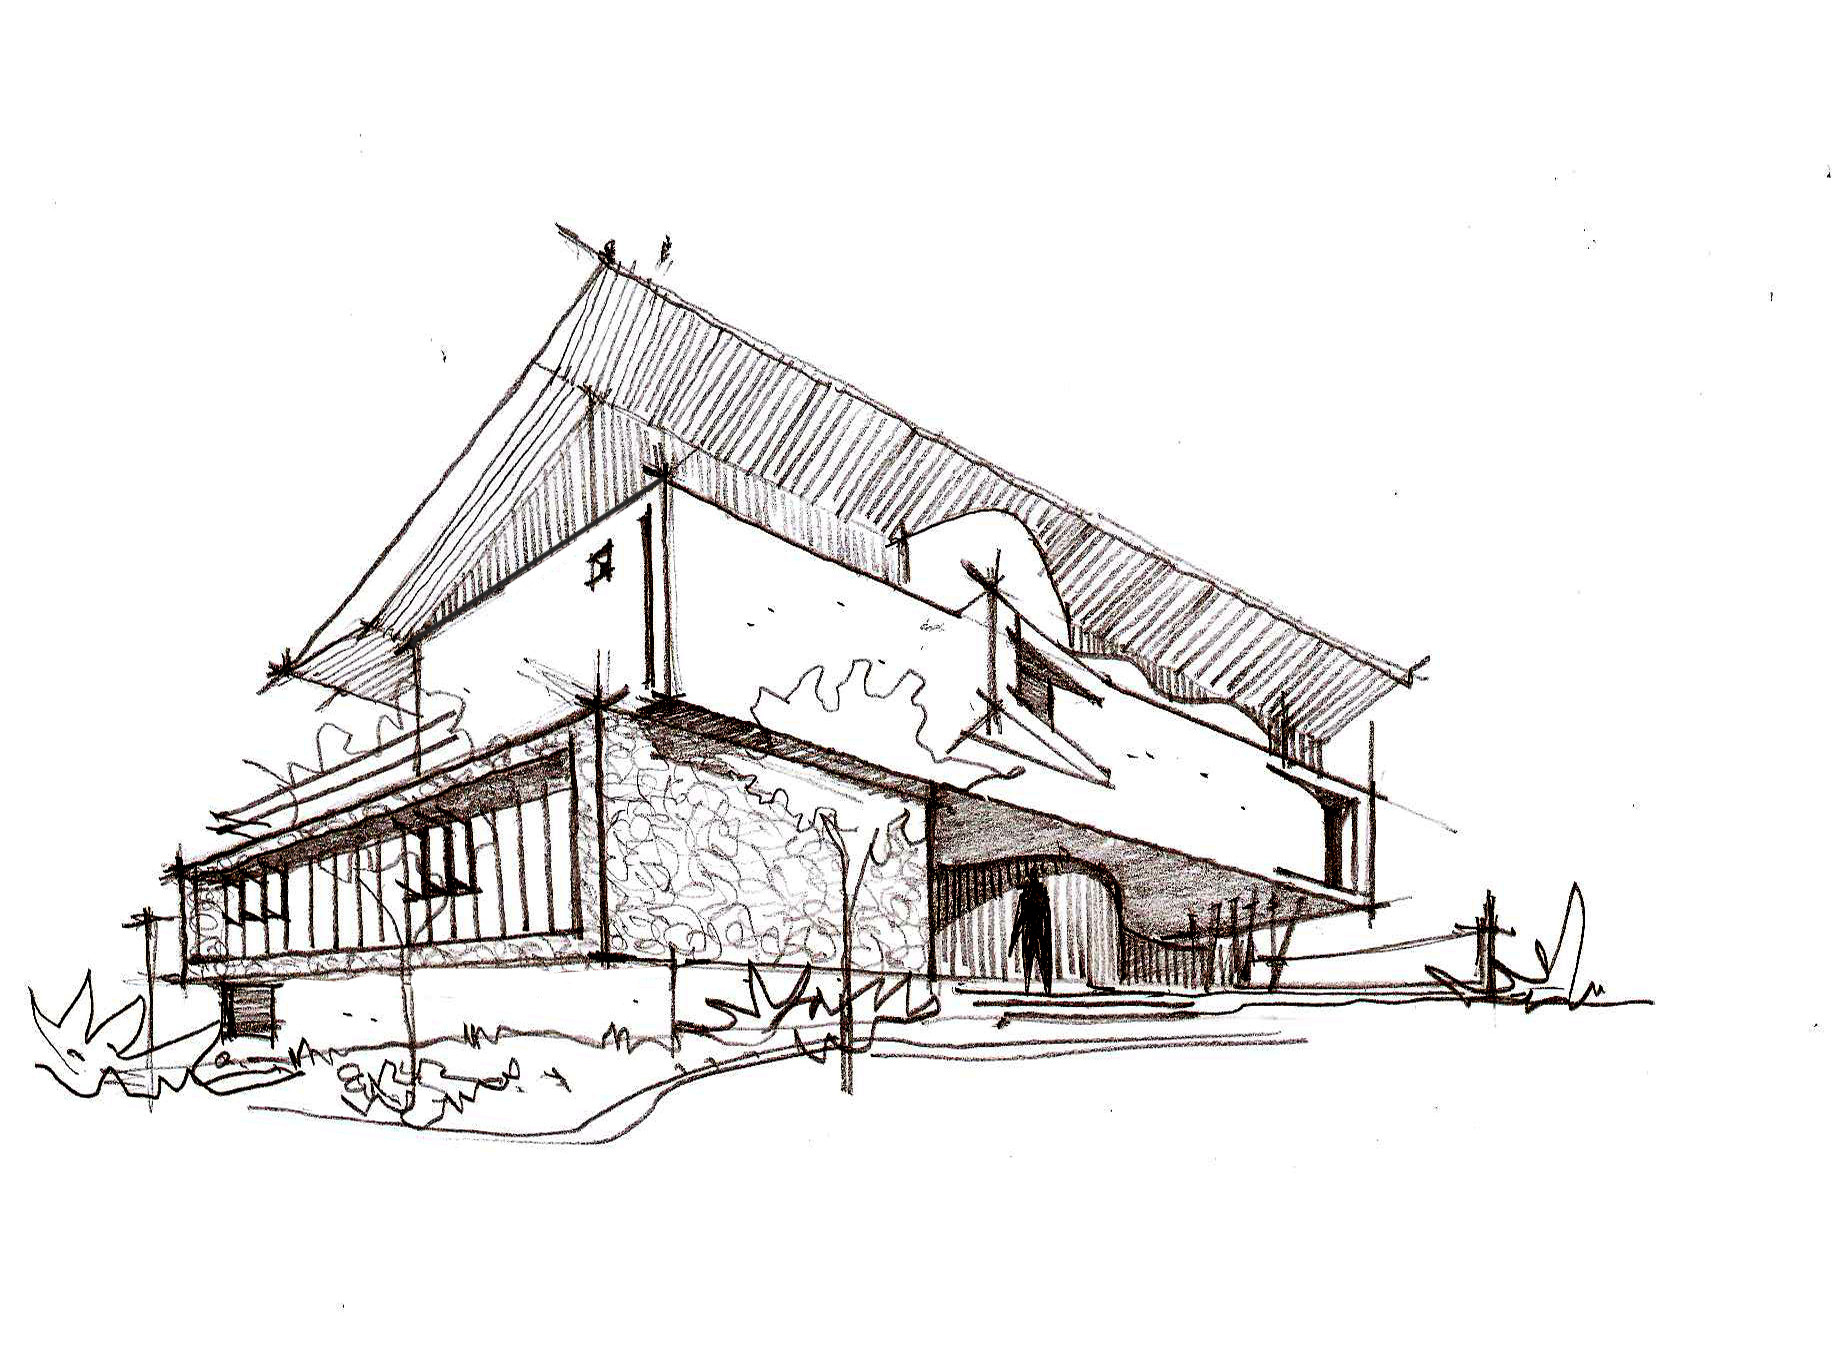 House Architecture Sketch brilliant house architecture sketch sketches joigoo all about the